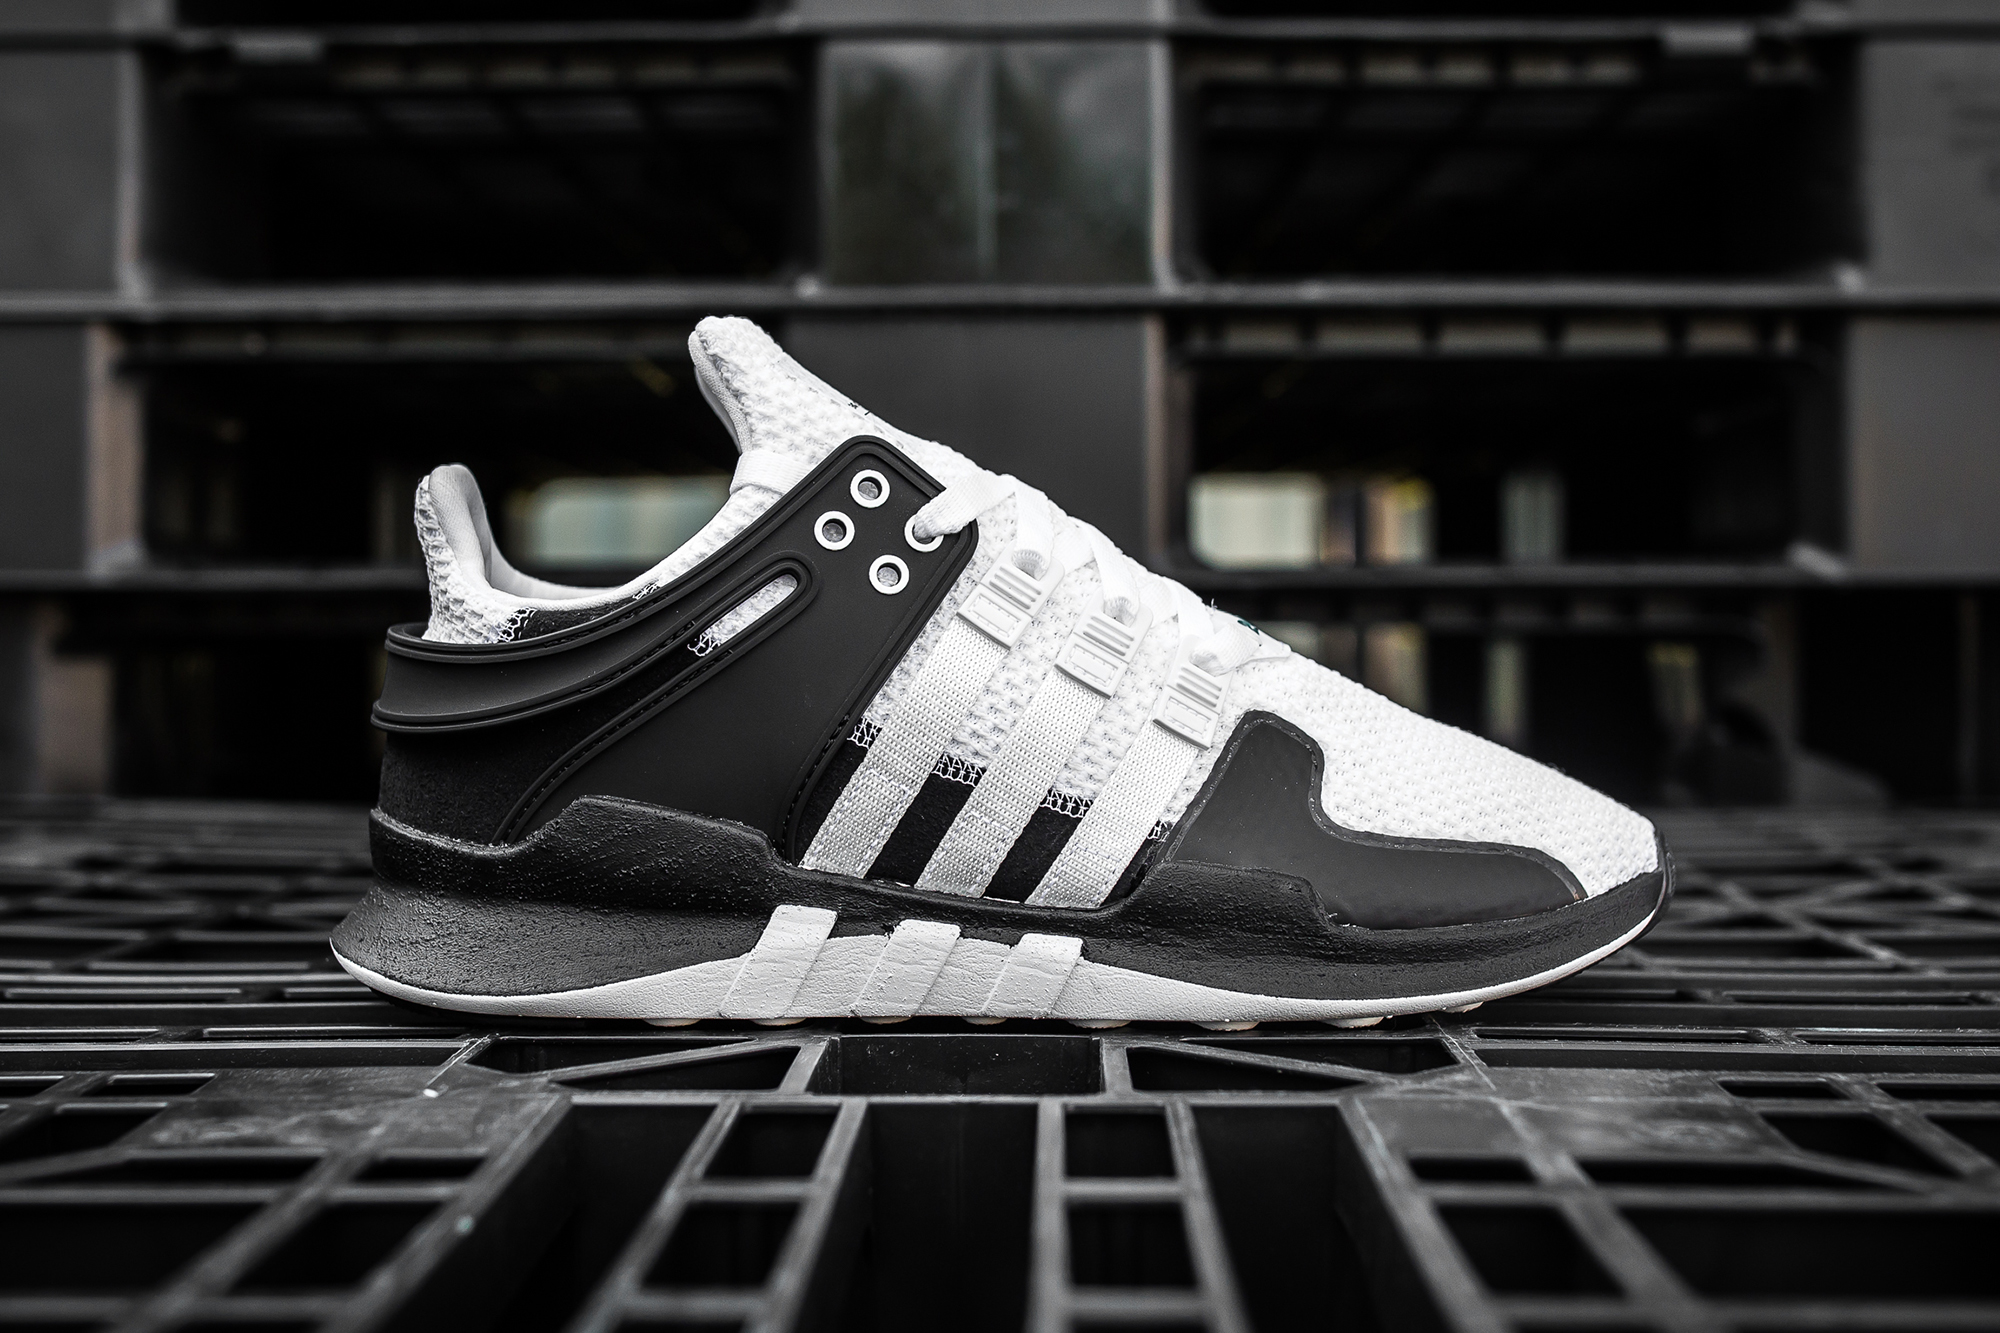 adidas eqt boost,adidas eqt support adv core black turbo,adidas neo